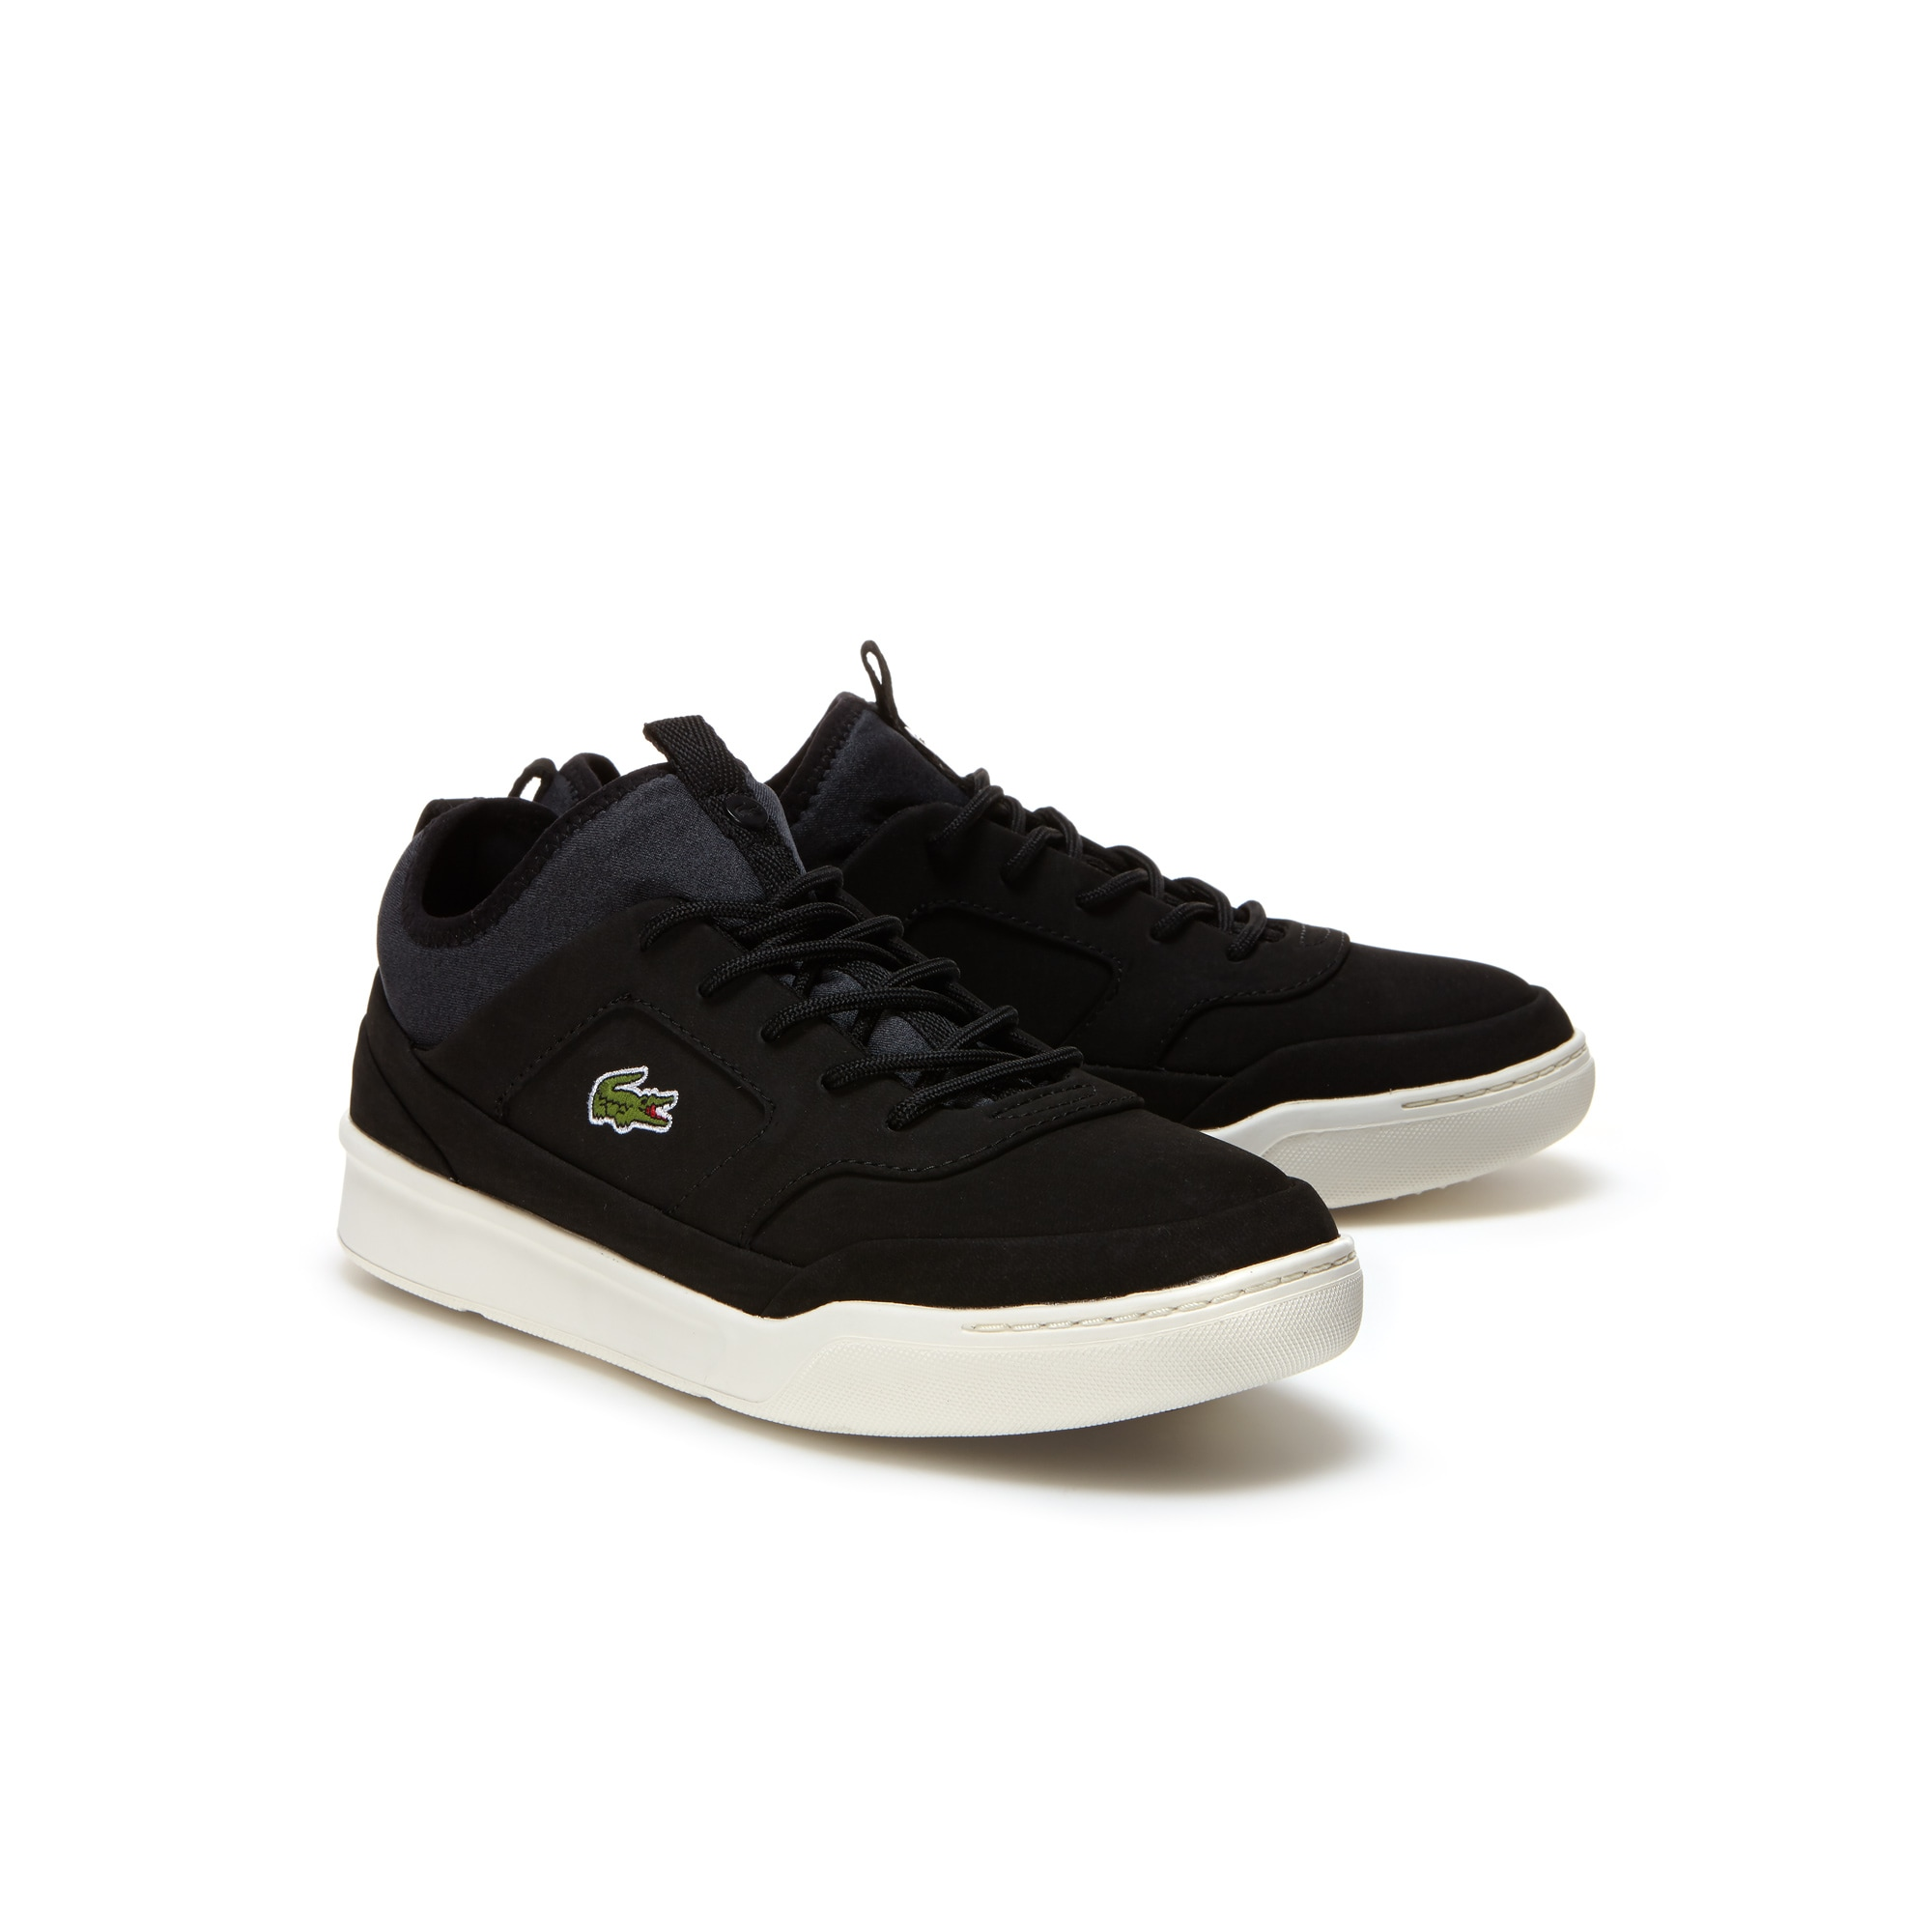 Lacoste MEN'S EXPLORATEUR CRAFT SPORT LEATHER TRAINERS 8IudpIRo